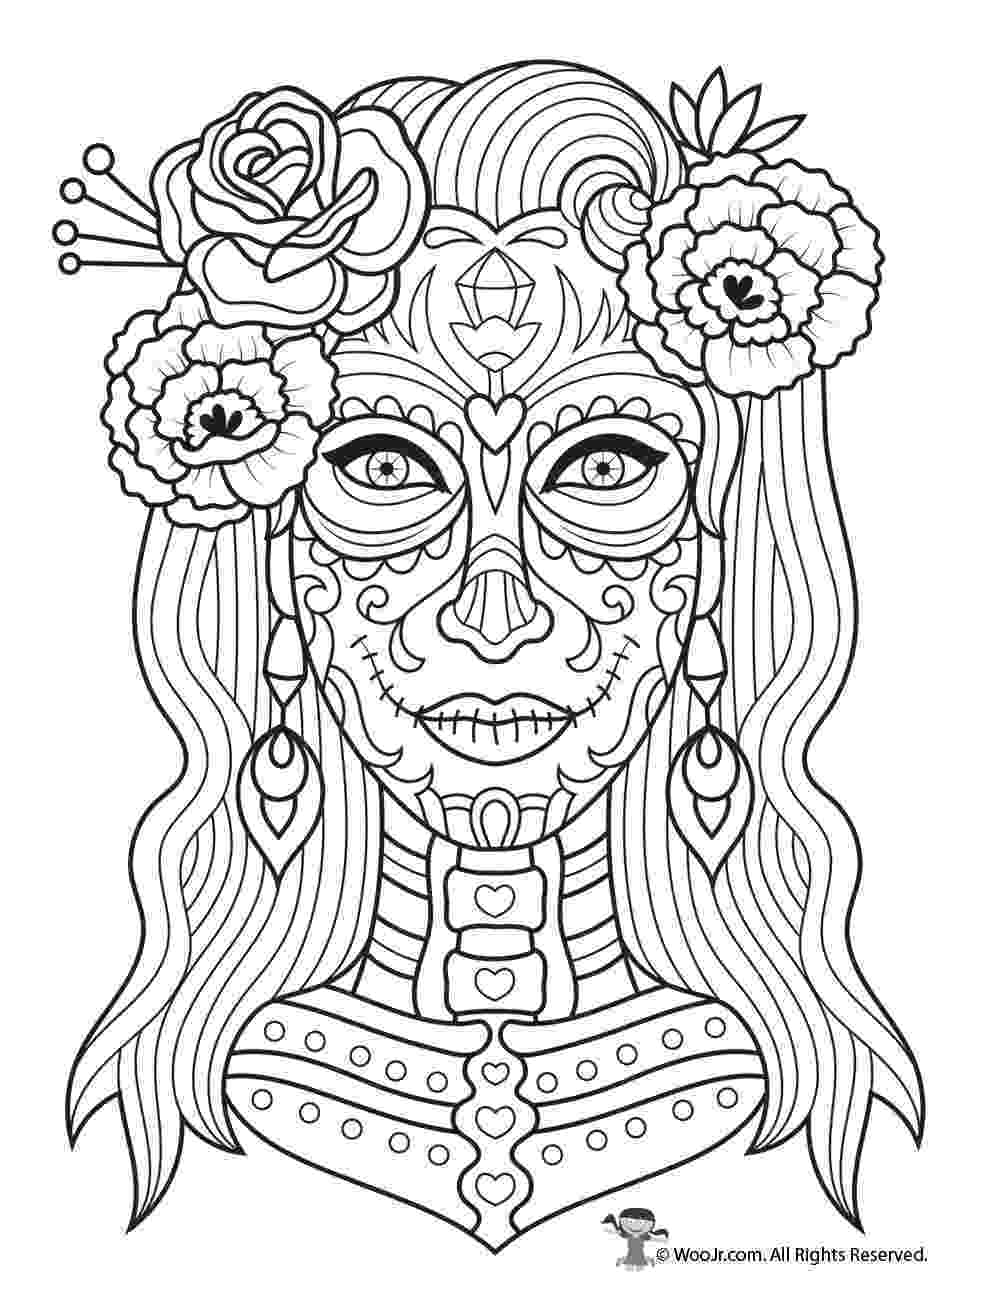 coloring pages for adults day of the dead 170 best sugar skulls calavera coloring art print pages adults the of for coloring dead pages day